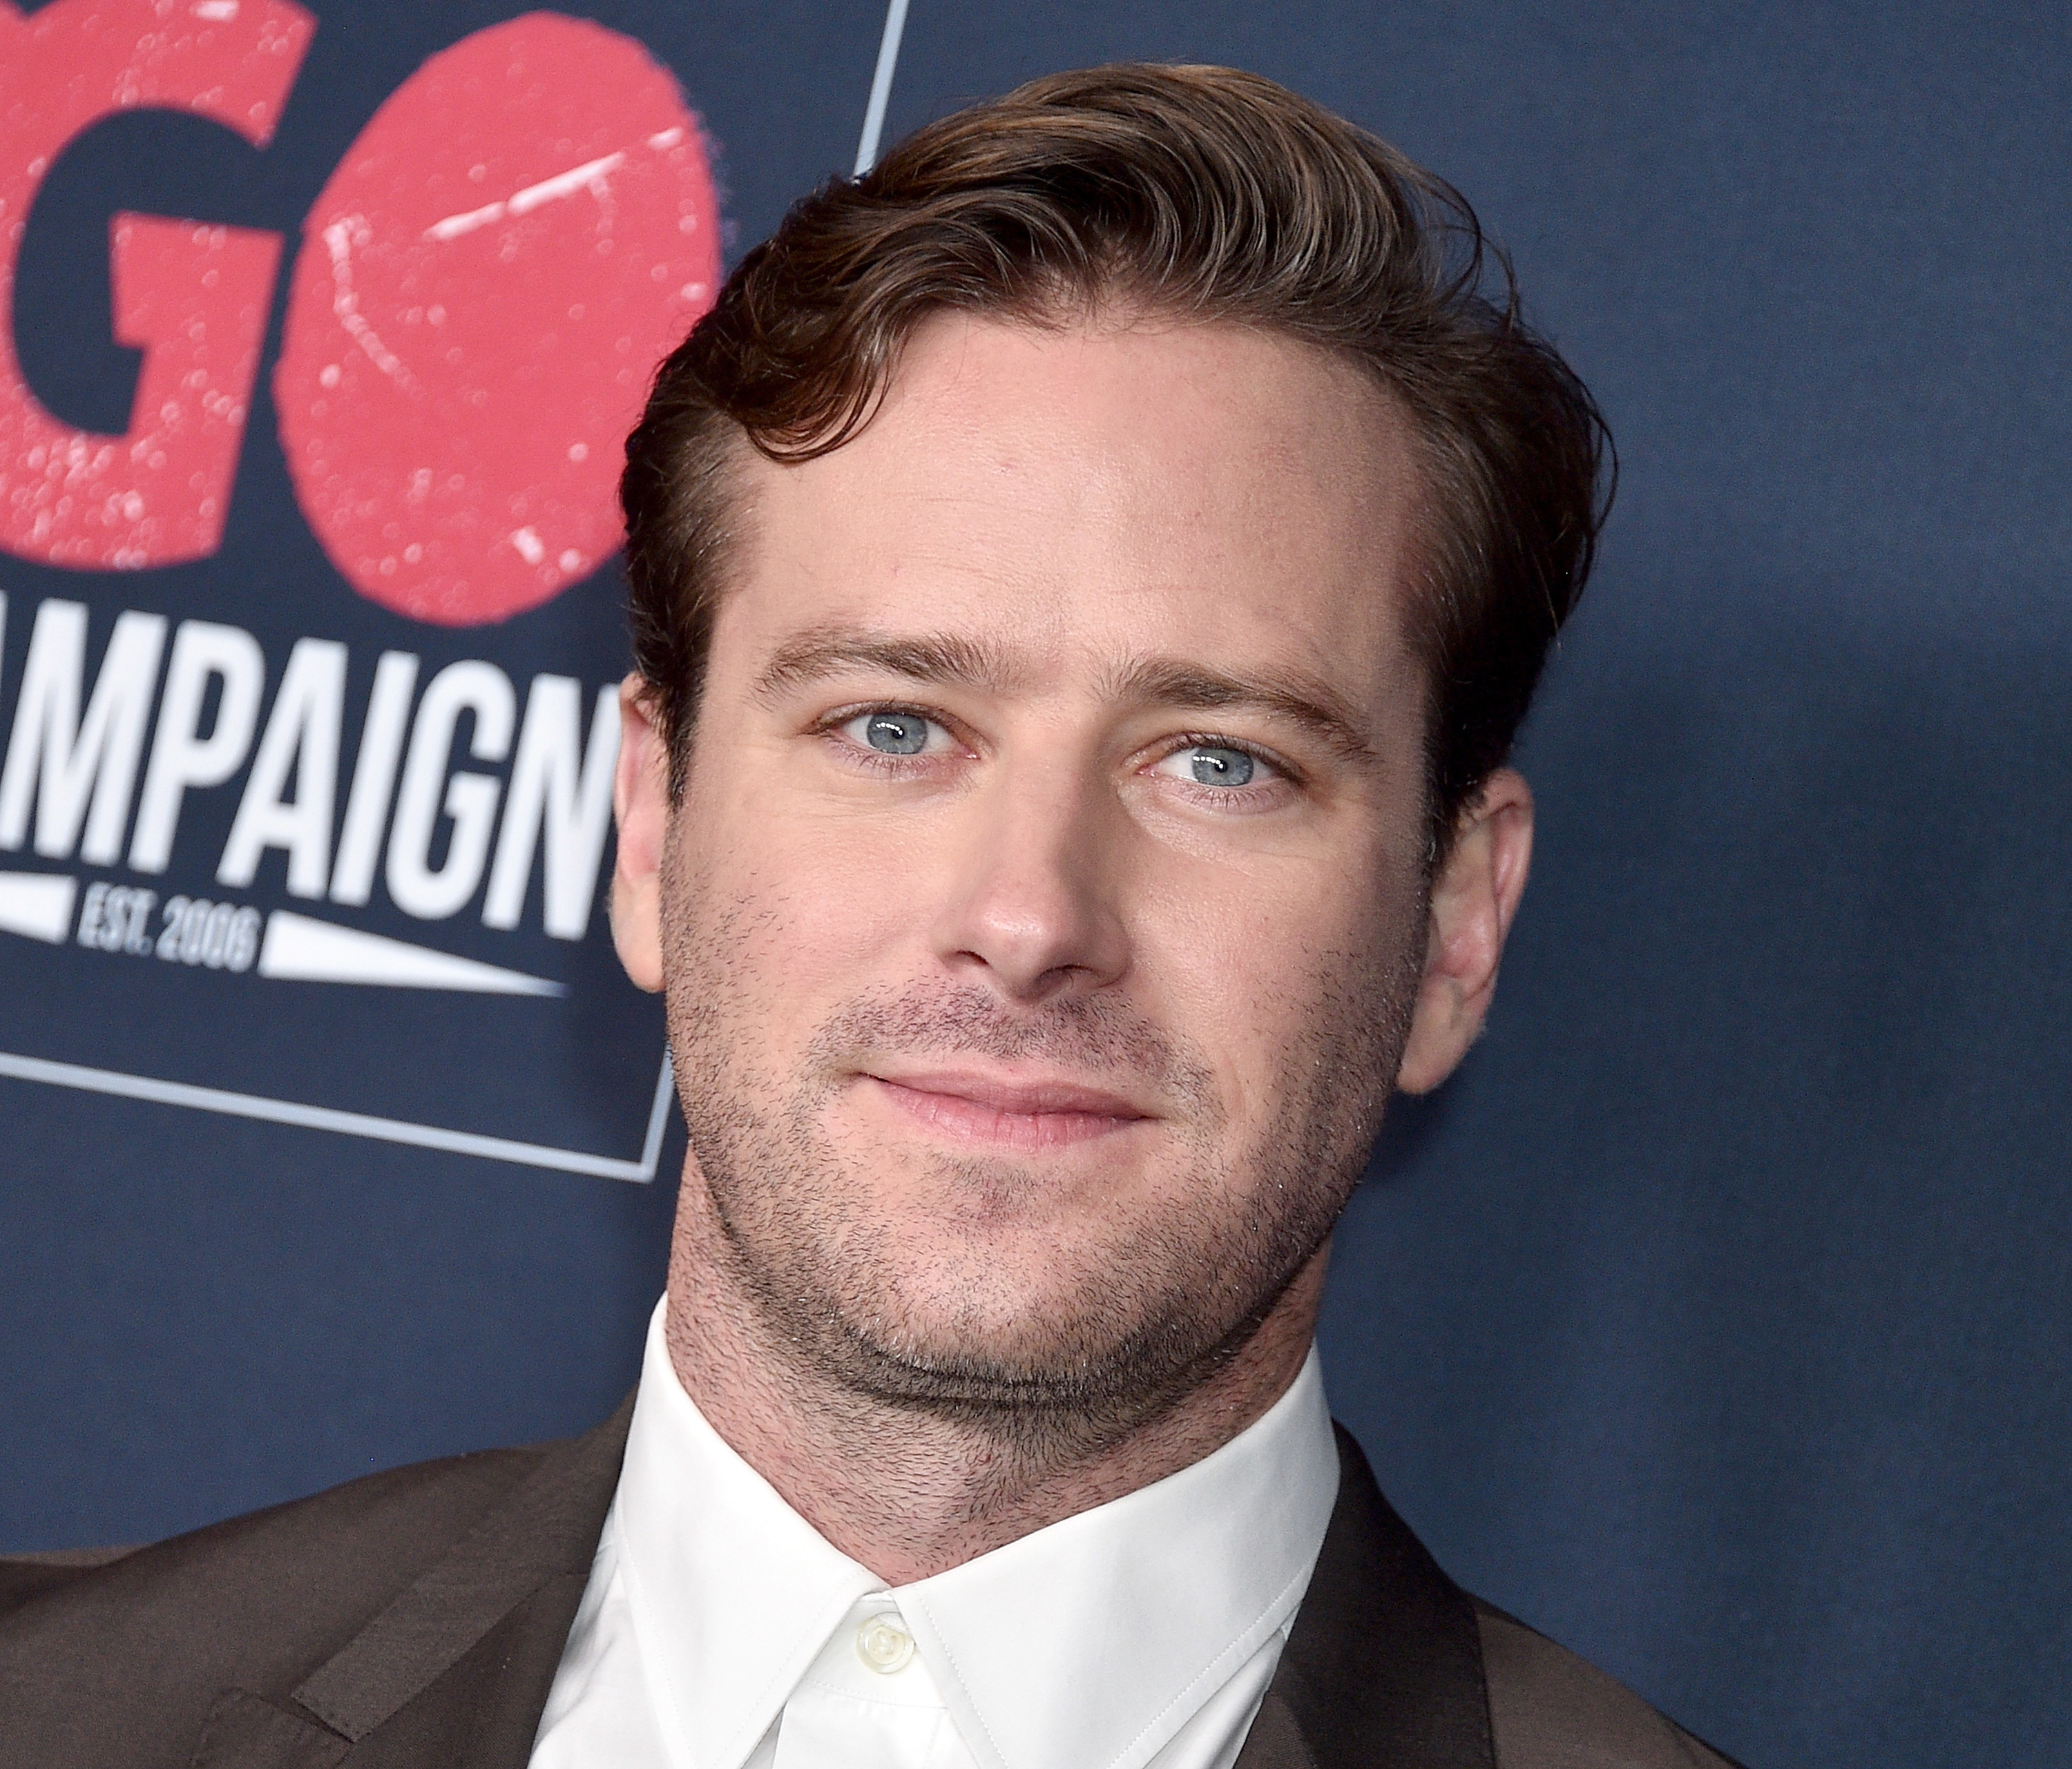 Armie Hammer arrives at the Go Campaign's 13th Annual Go Gala